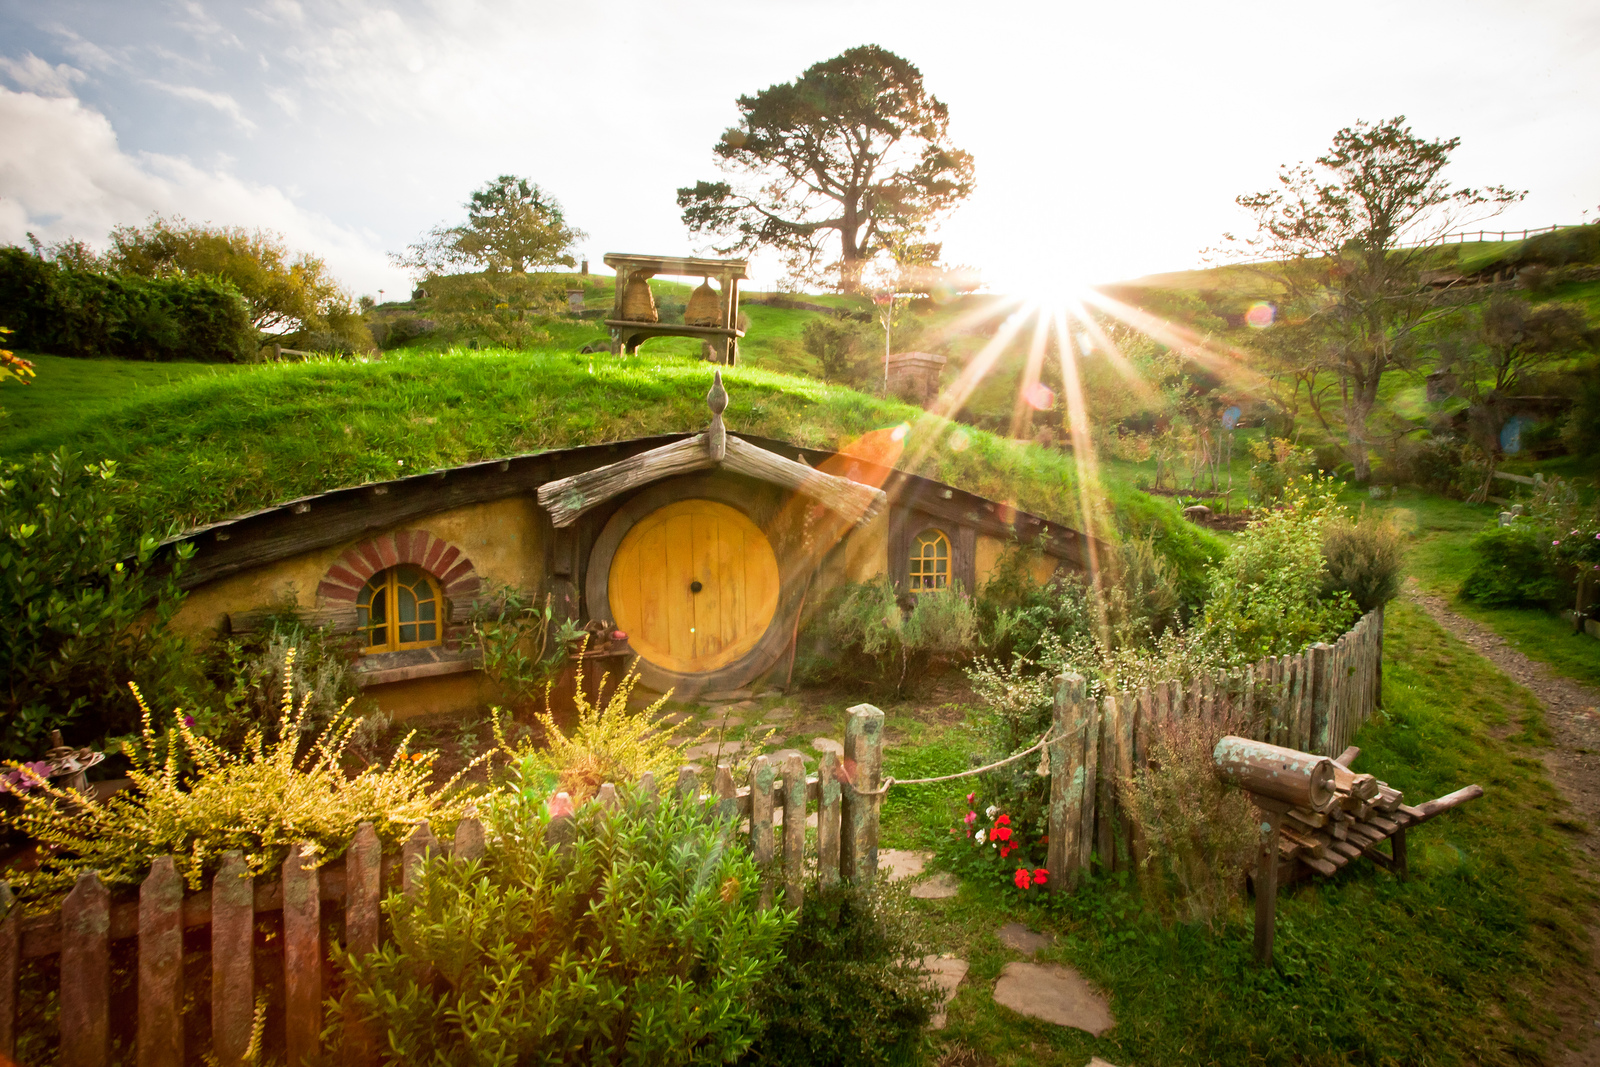 See this Hobbit house? You could live there